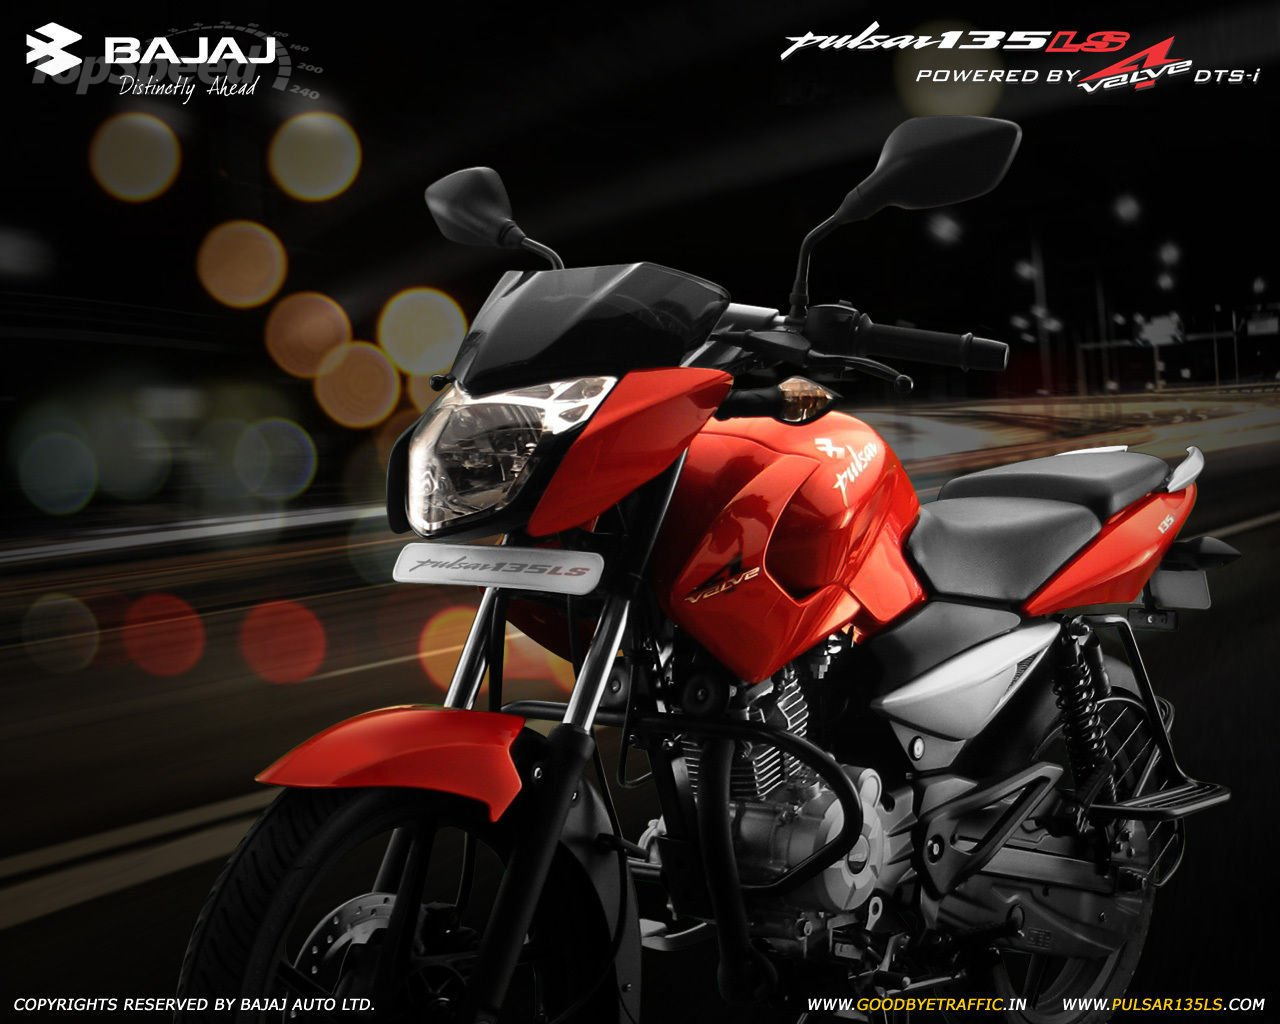 Bajaj Pulsar 135LS Price Slashed By Rs 5,500